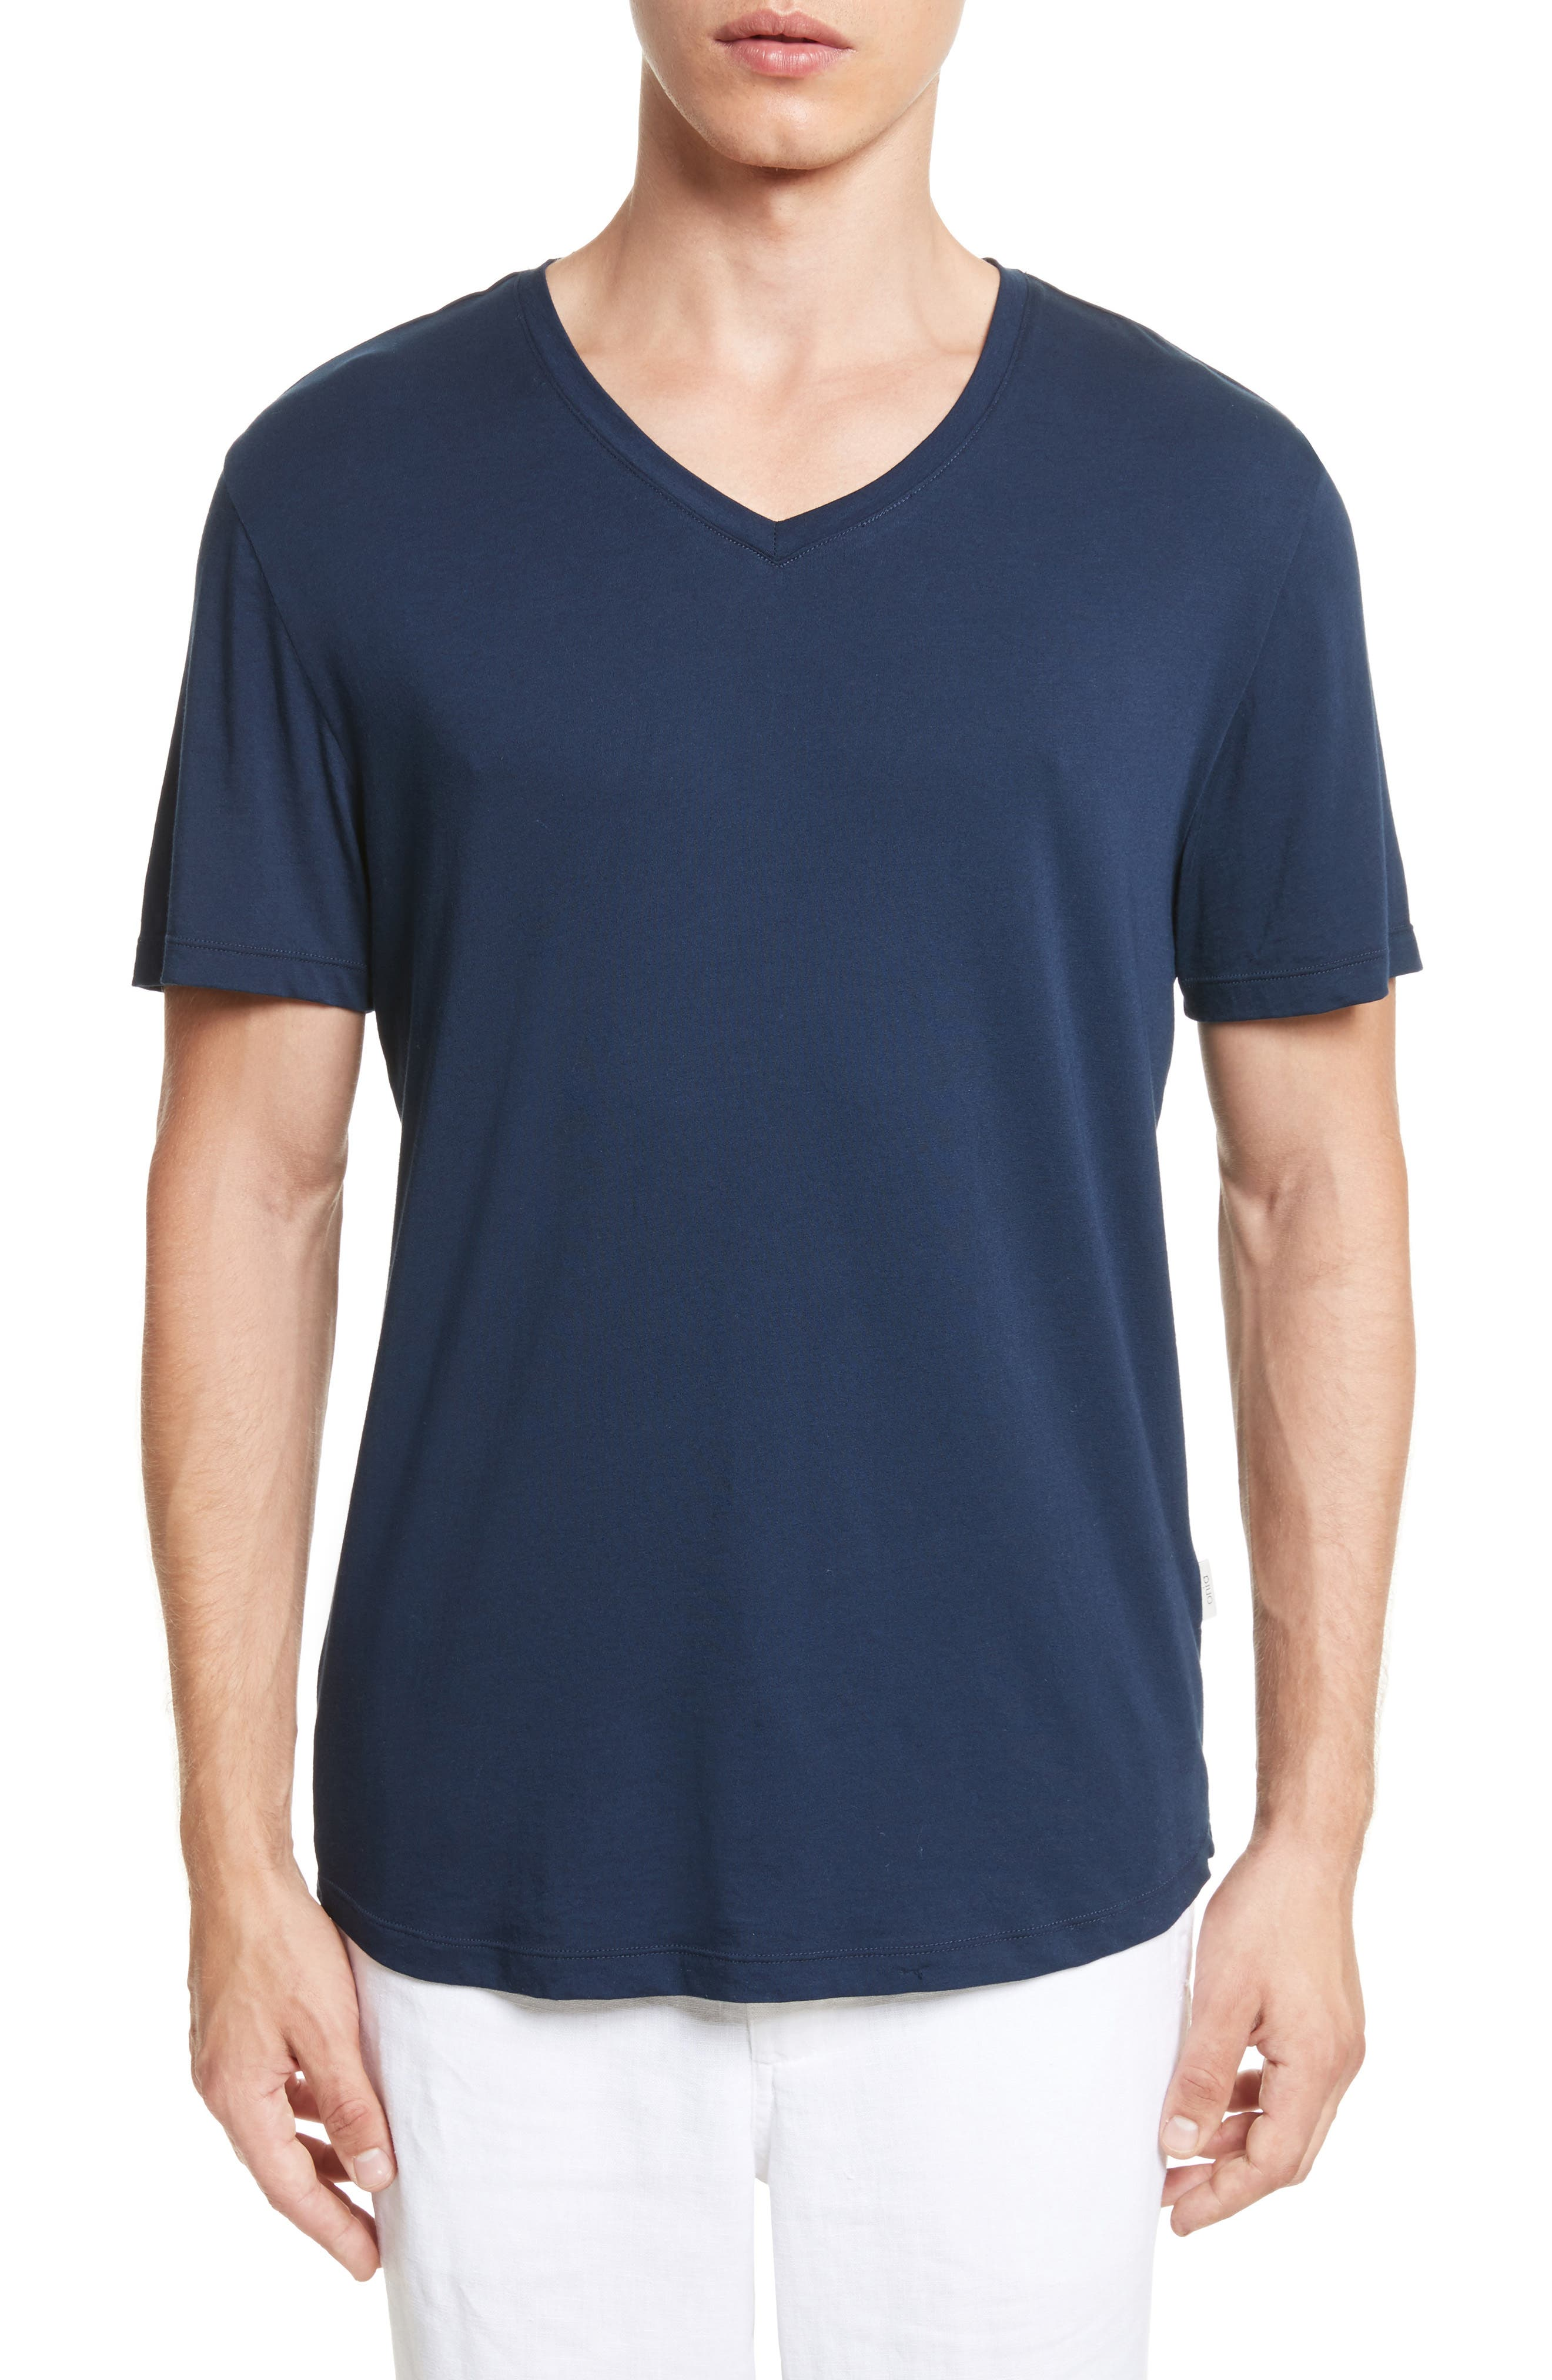 ONIA Joey V-Neck T-shirt